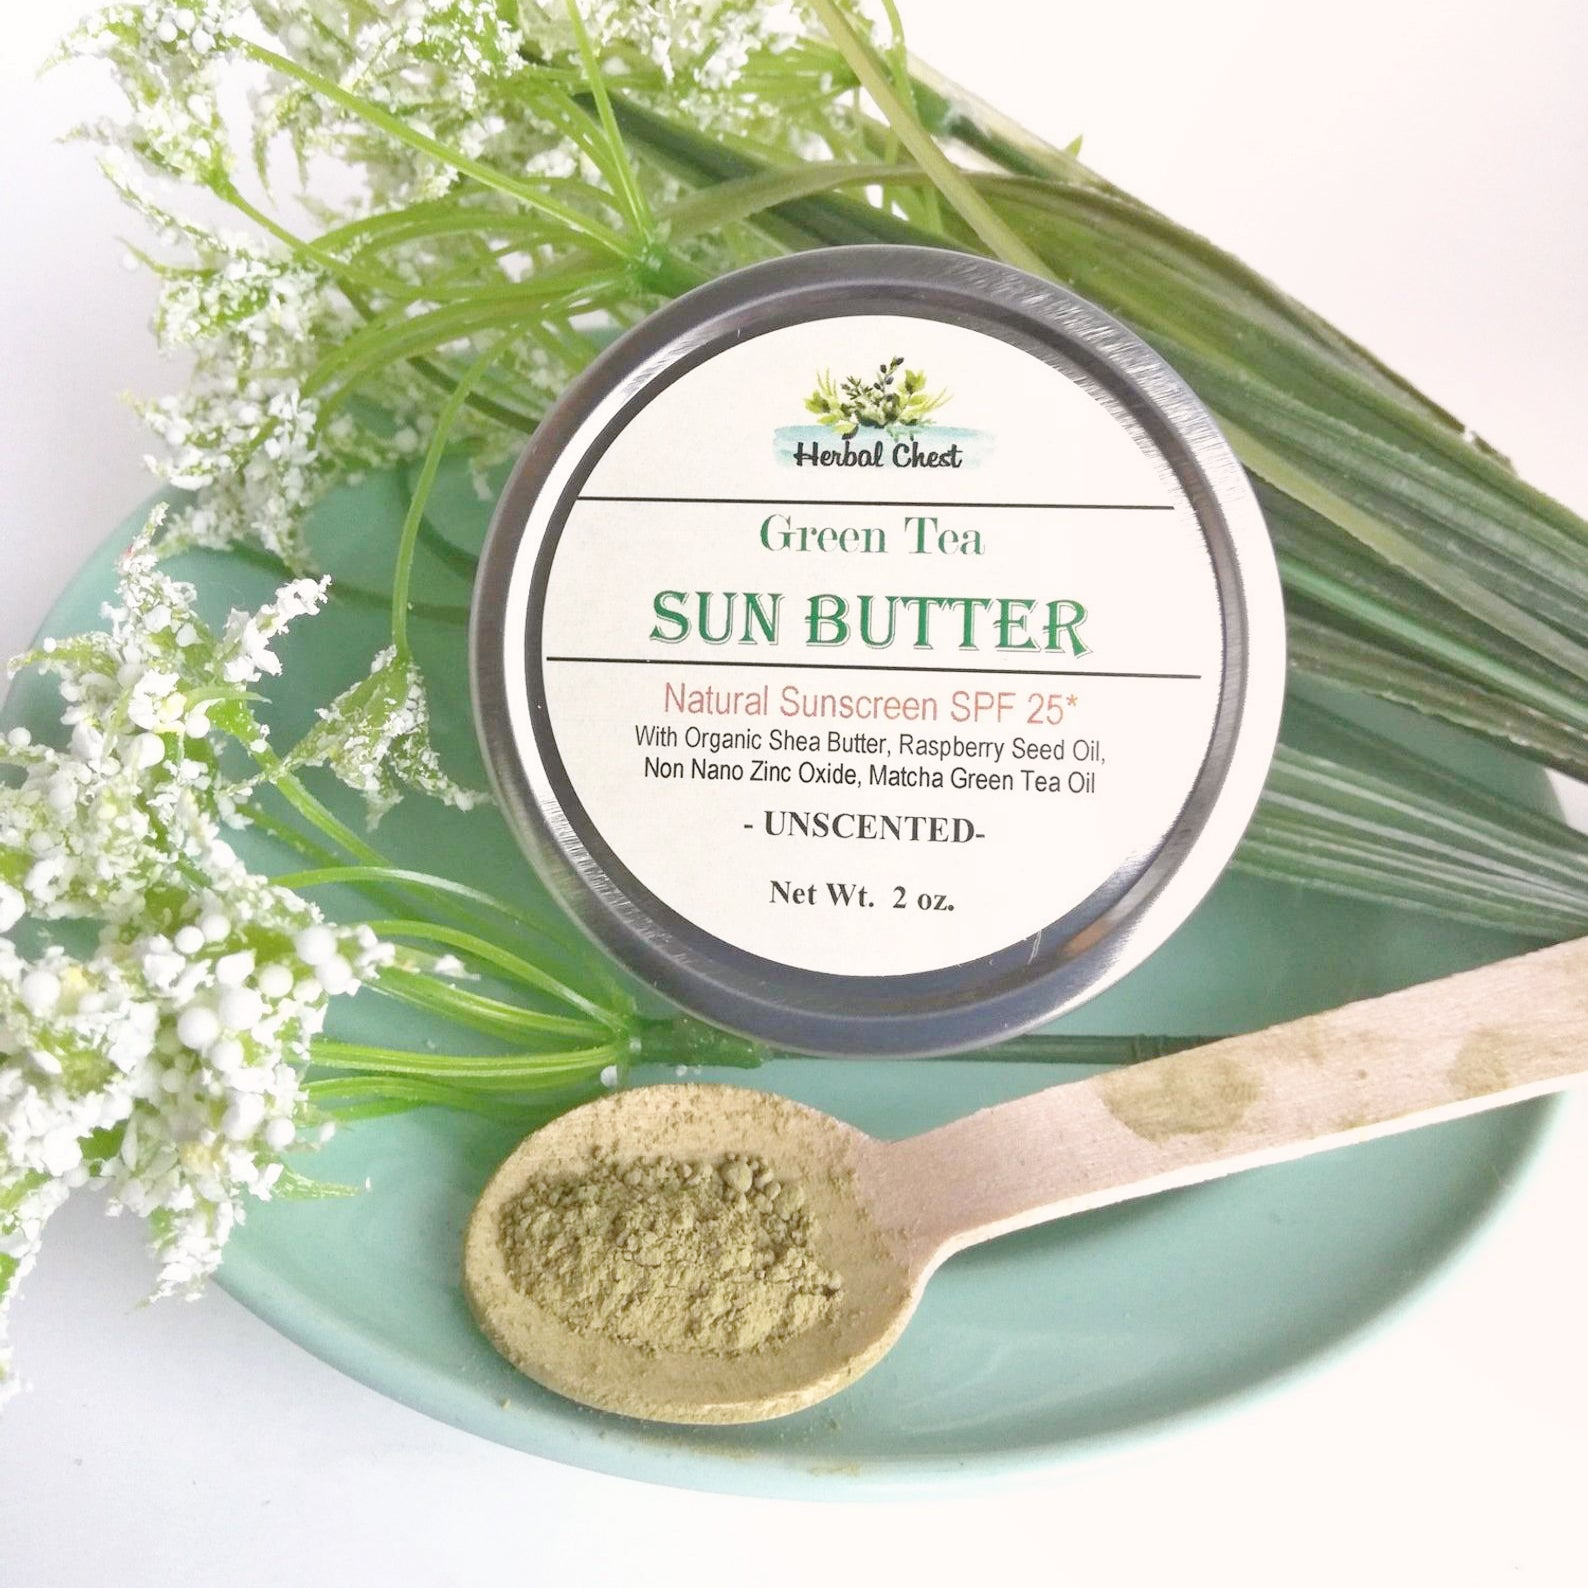 Natural Green Tea Sun Butter - SPF 25 Green Tea Sun Butter Natural Sunscreen